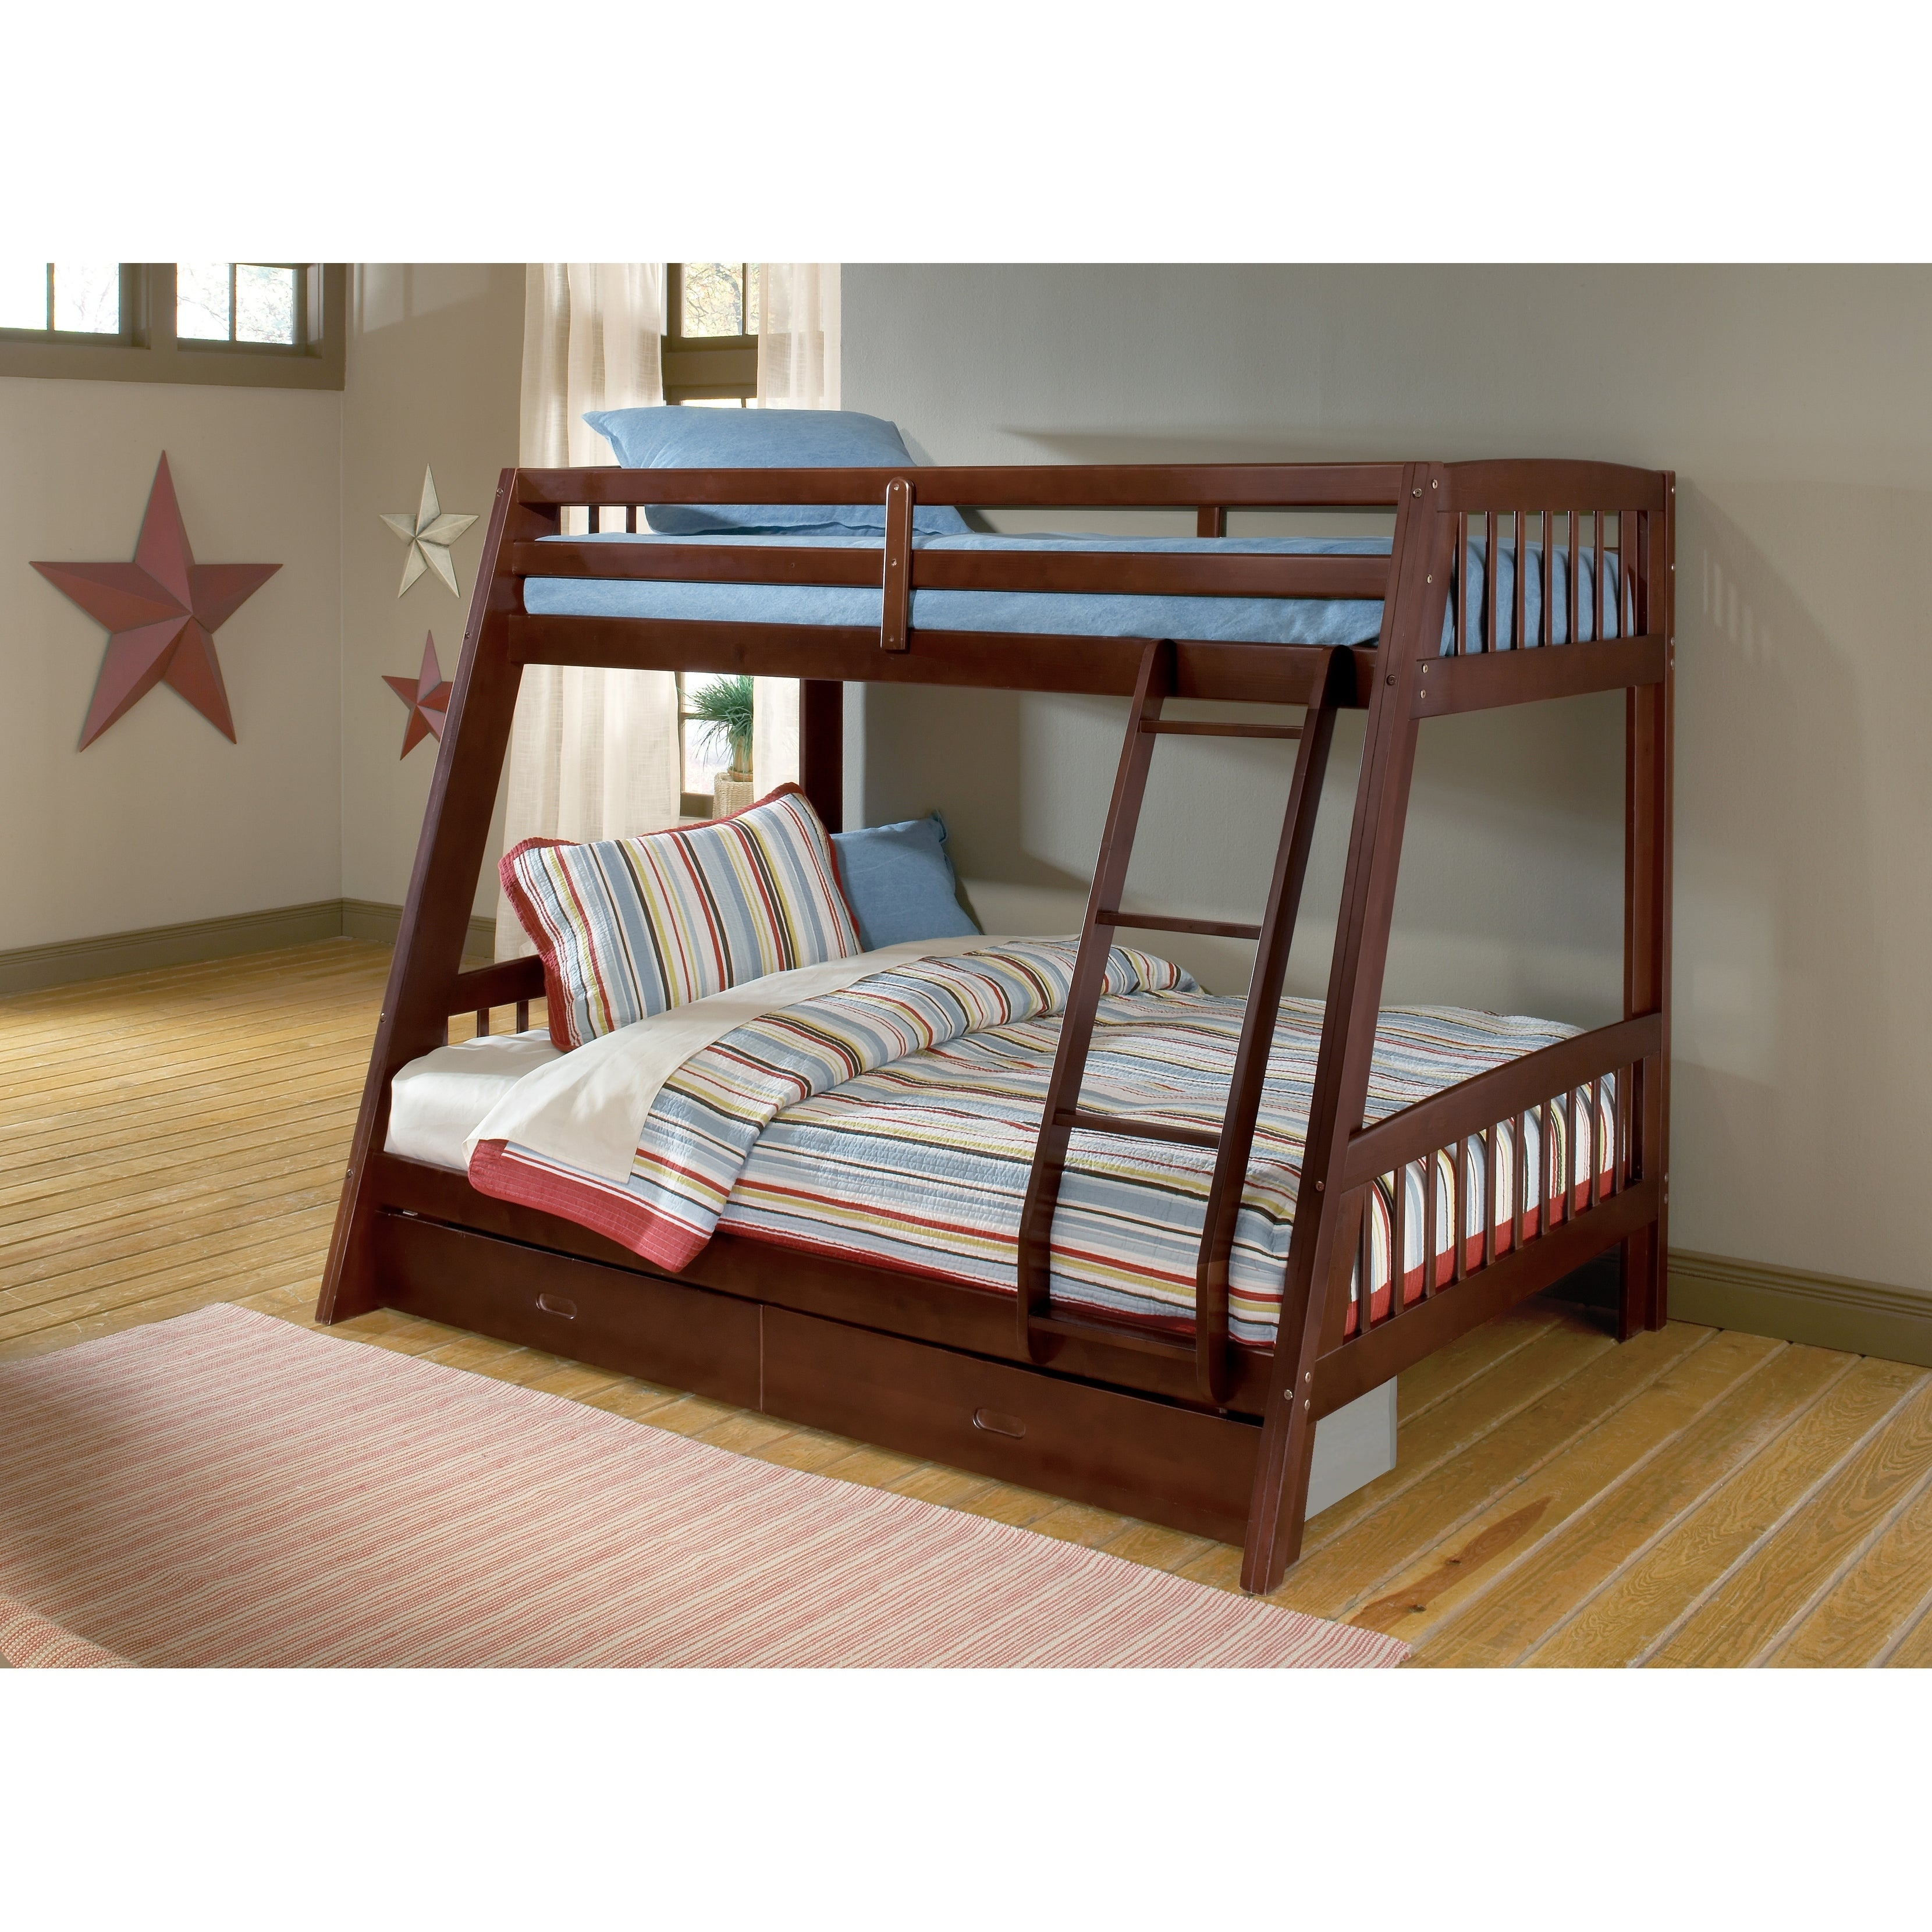 Rockdale Twin Over Full Bunk Bed On Sale Overstock 9620641 Espresso